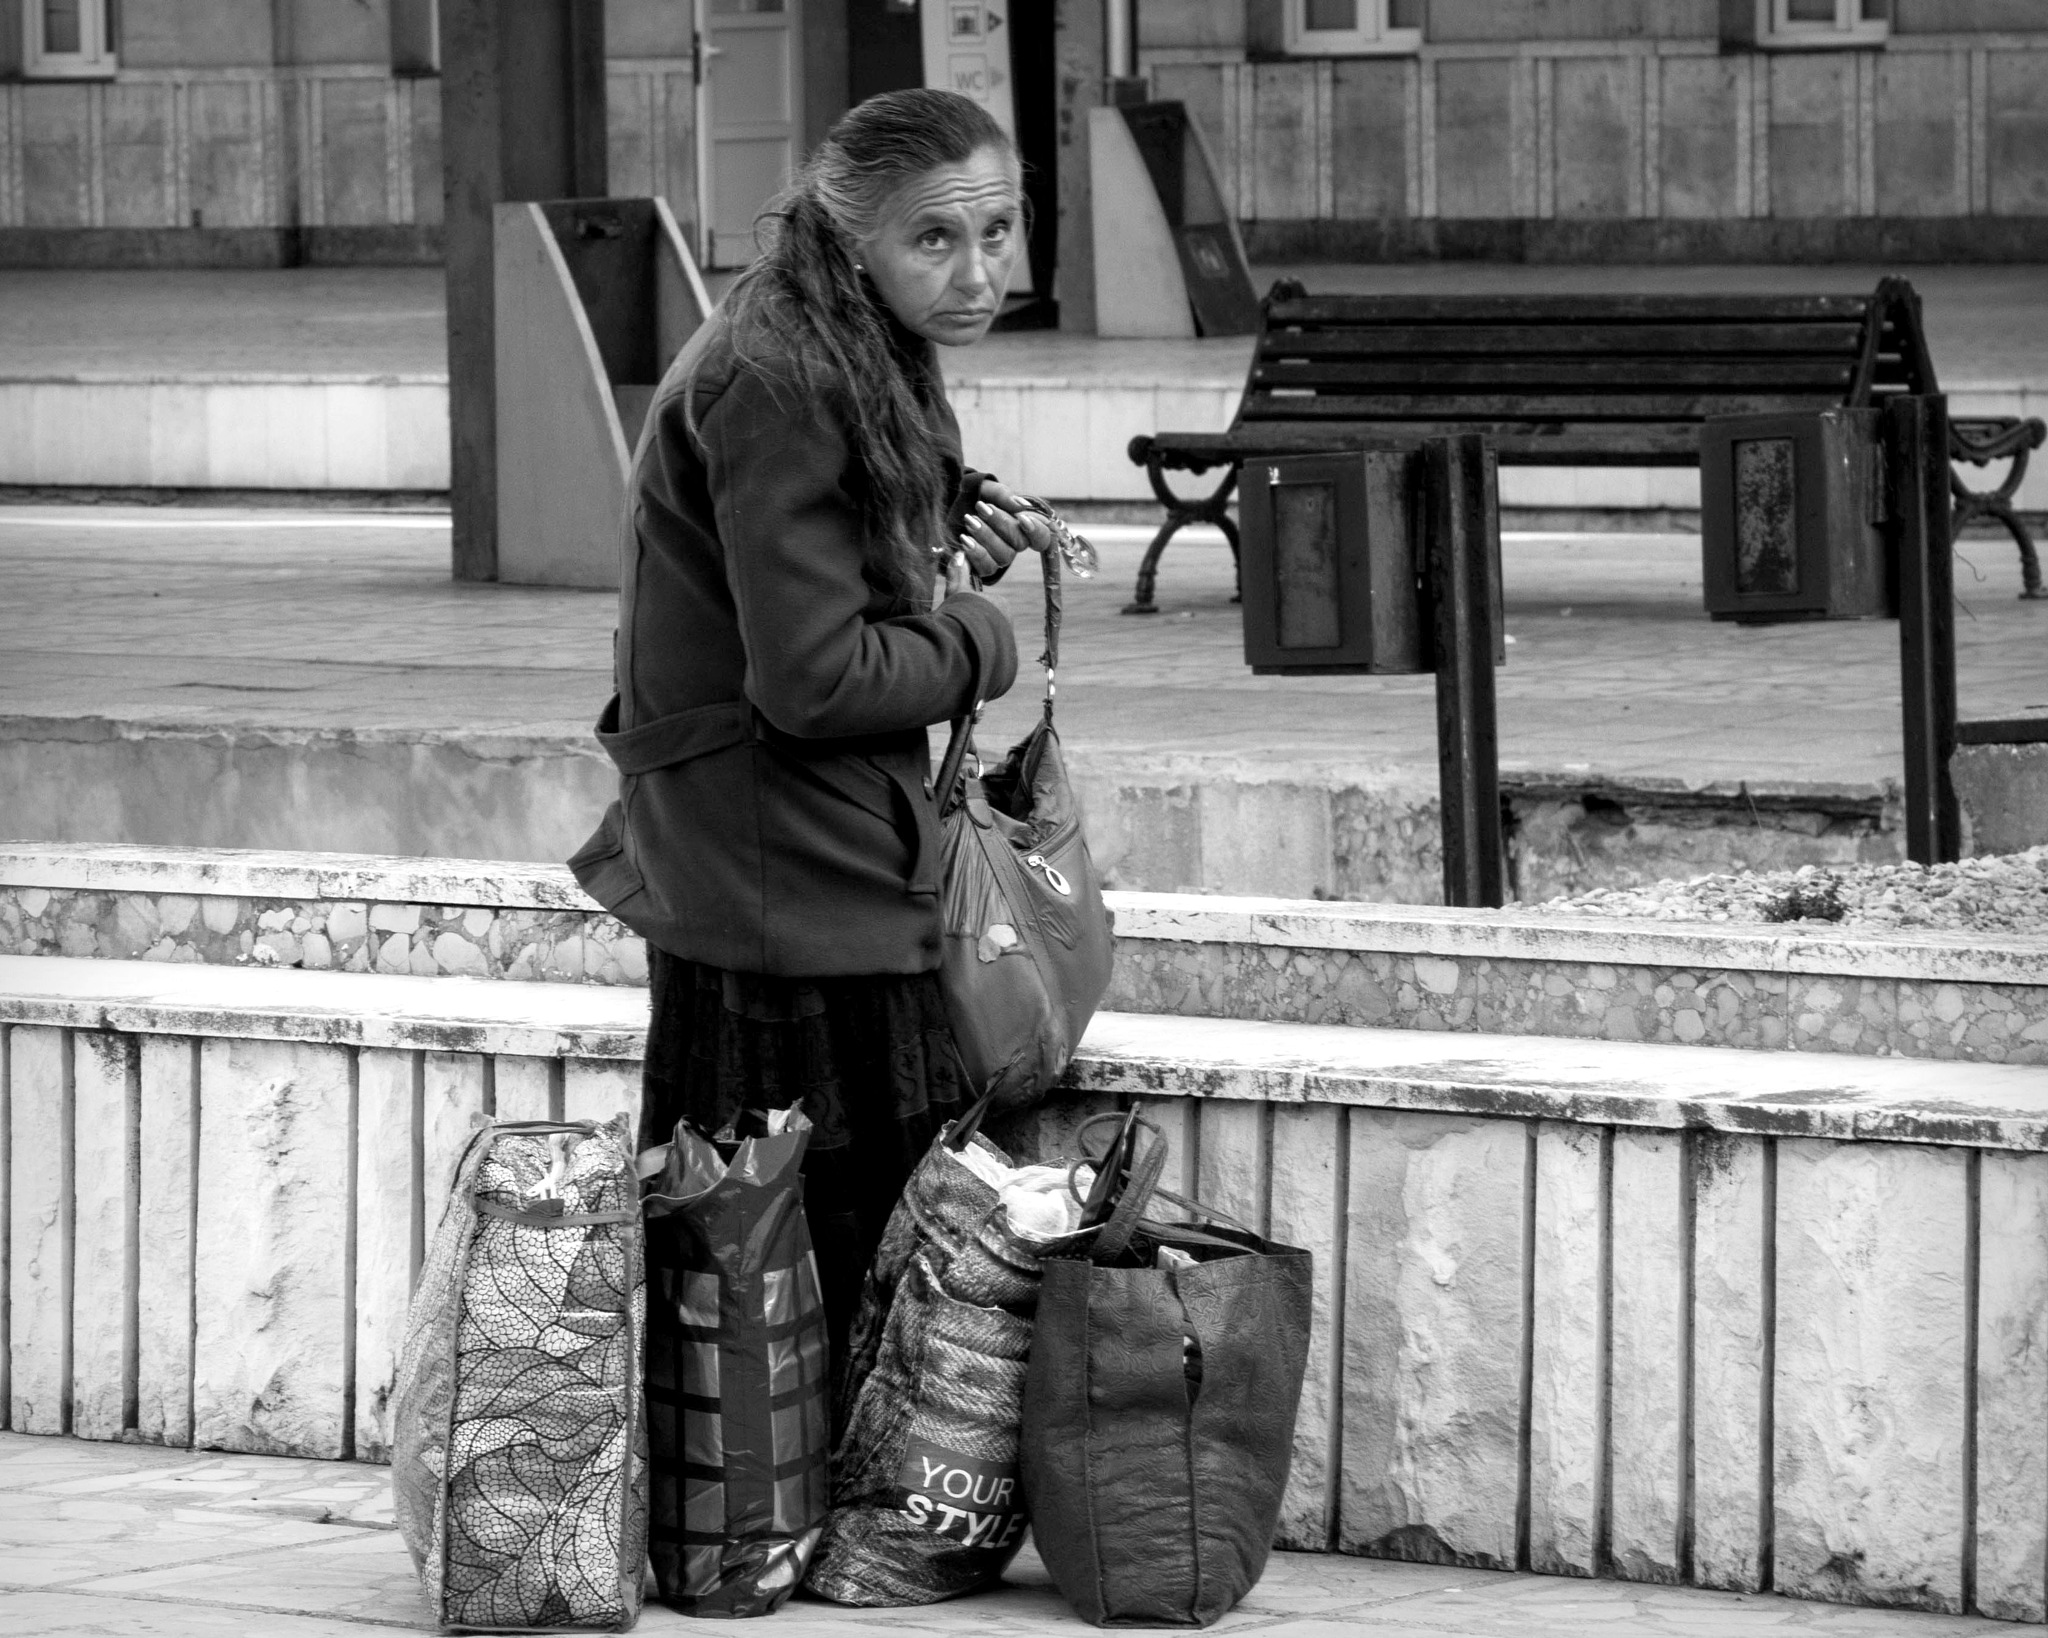 """""""The Woman with bags"""" by Mladen Marinov (MM)"""